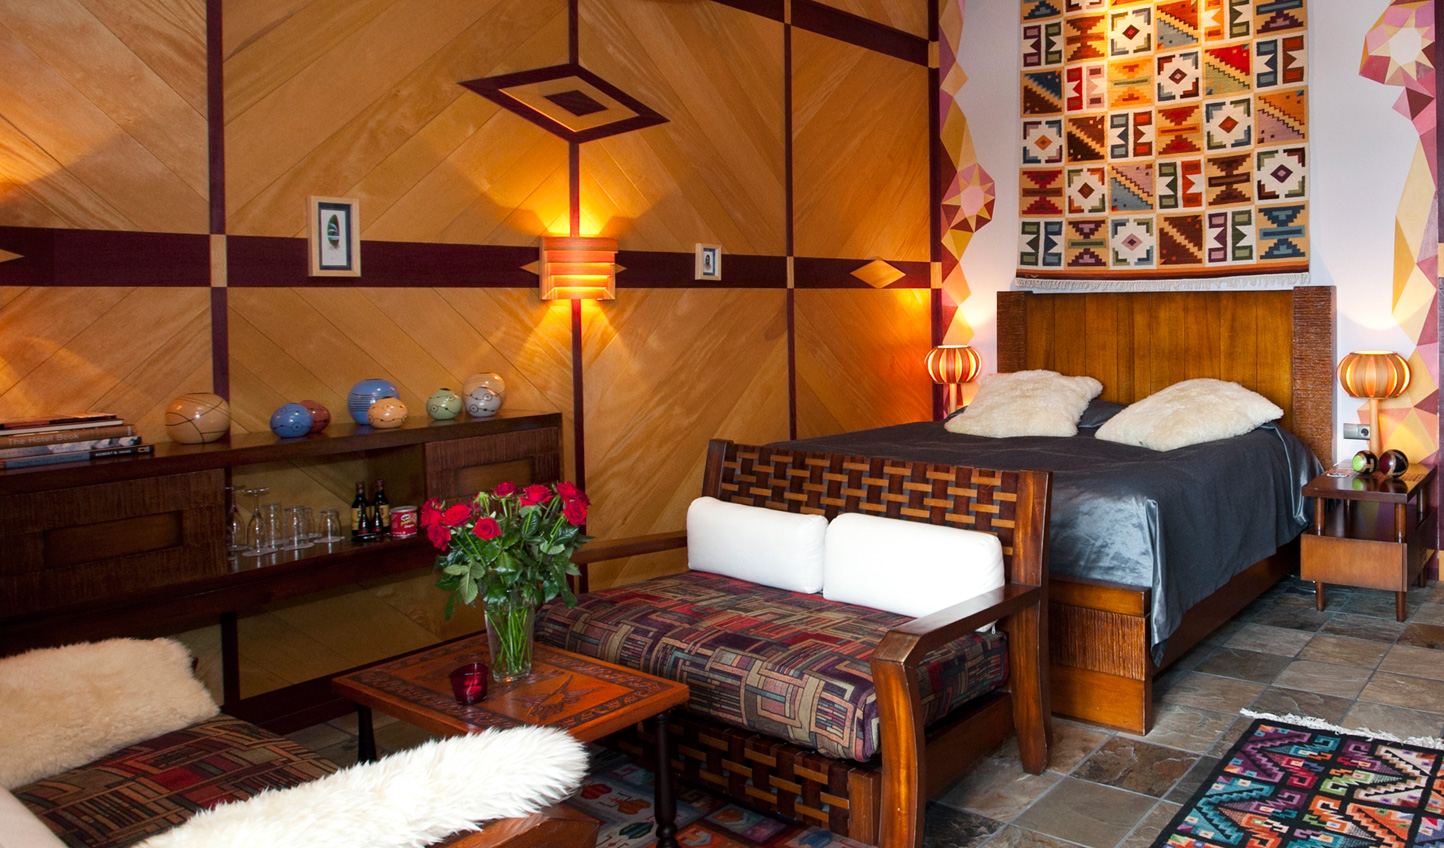 Each suite has been individually decorated to reflect a different continent